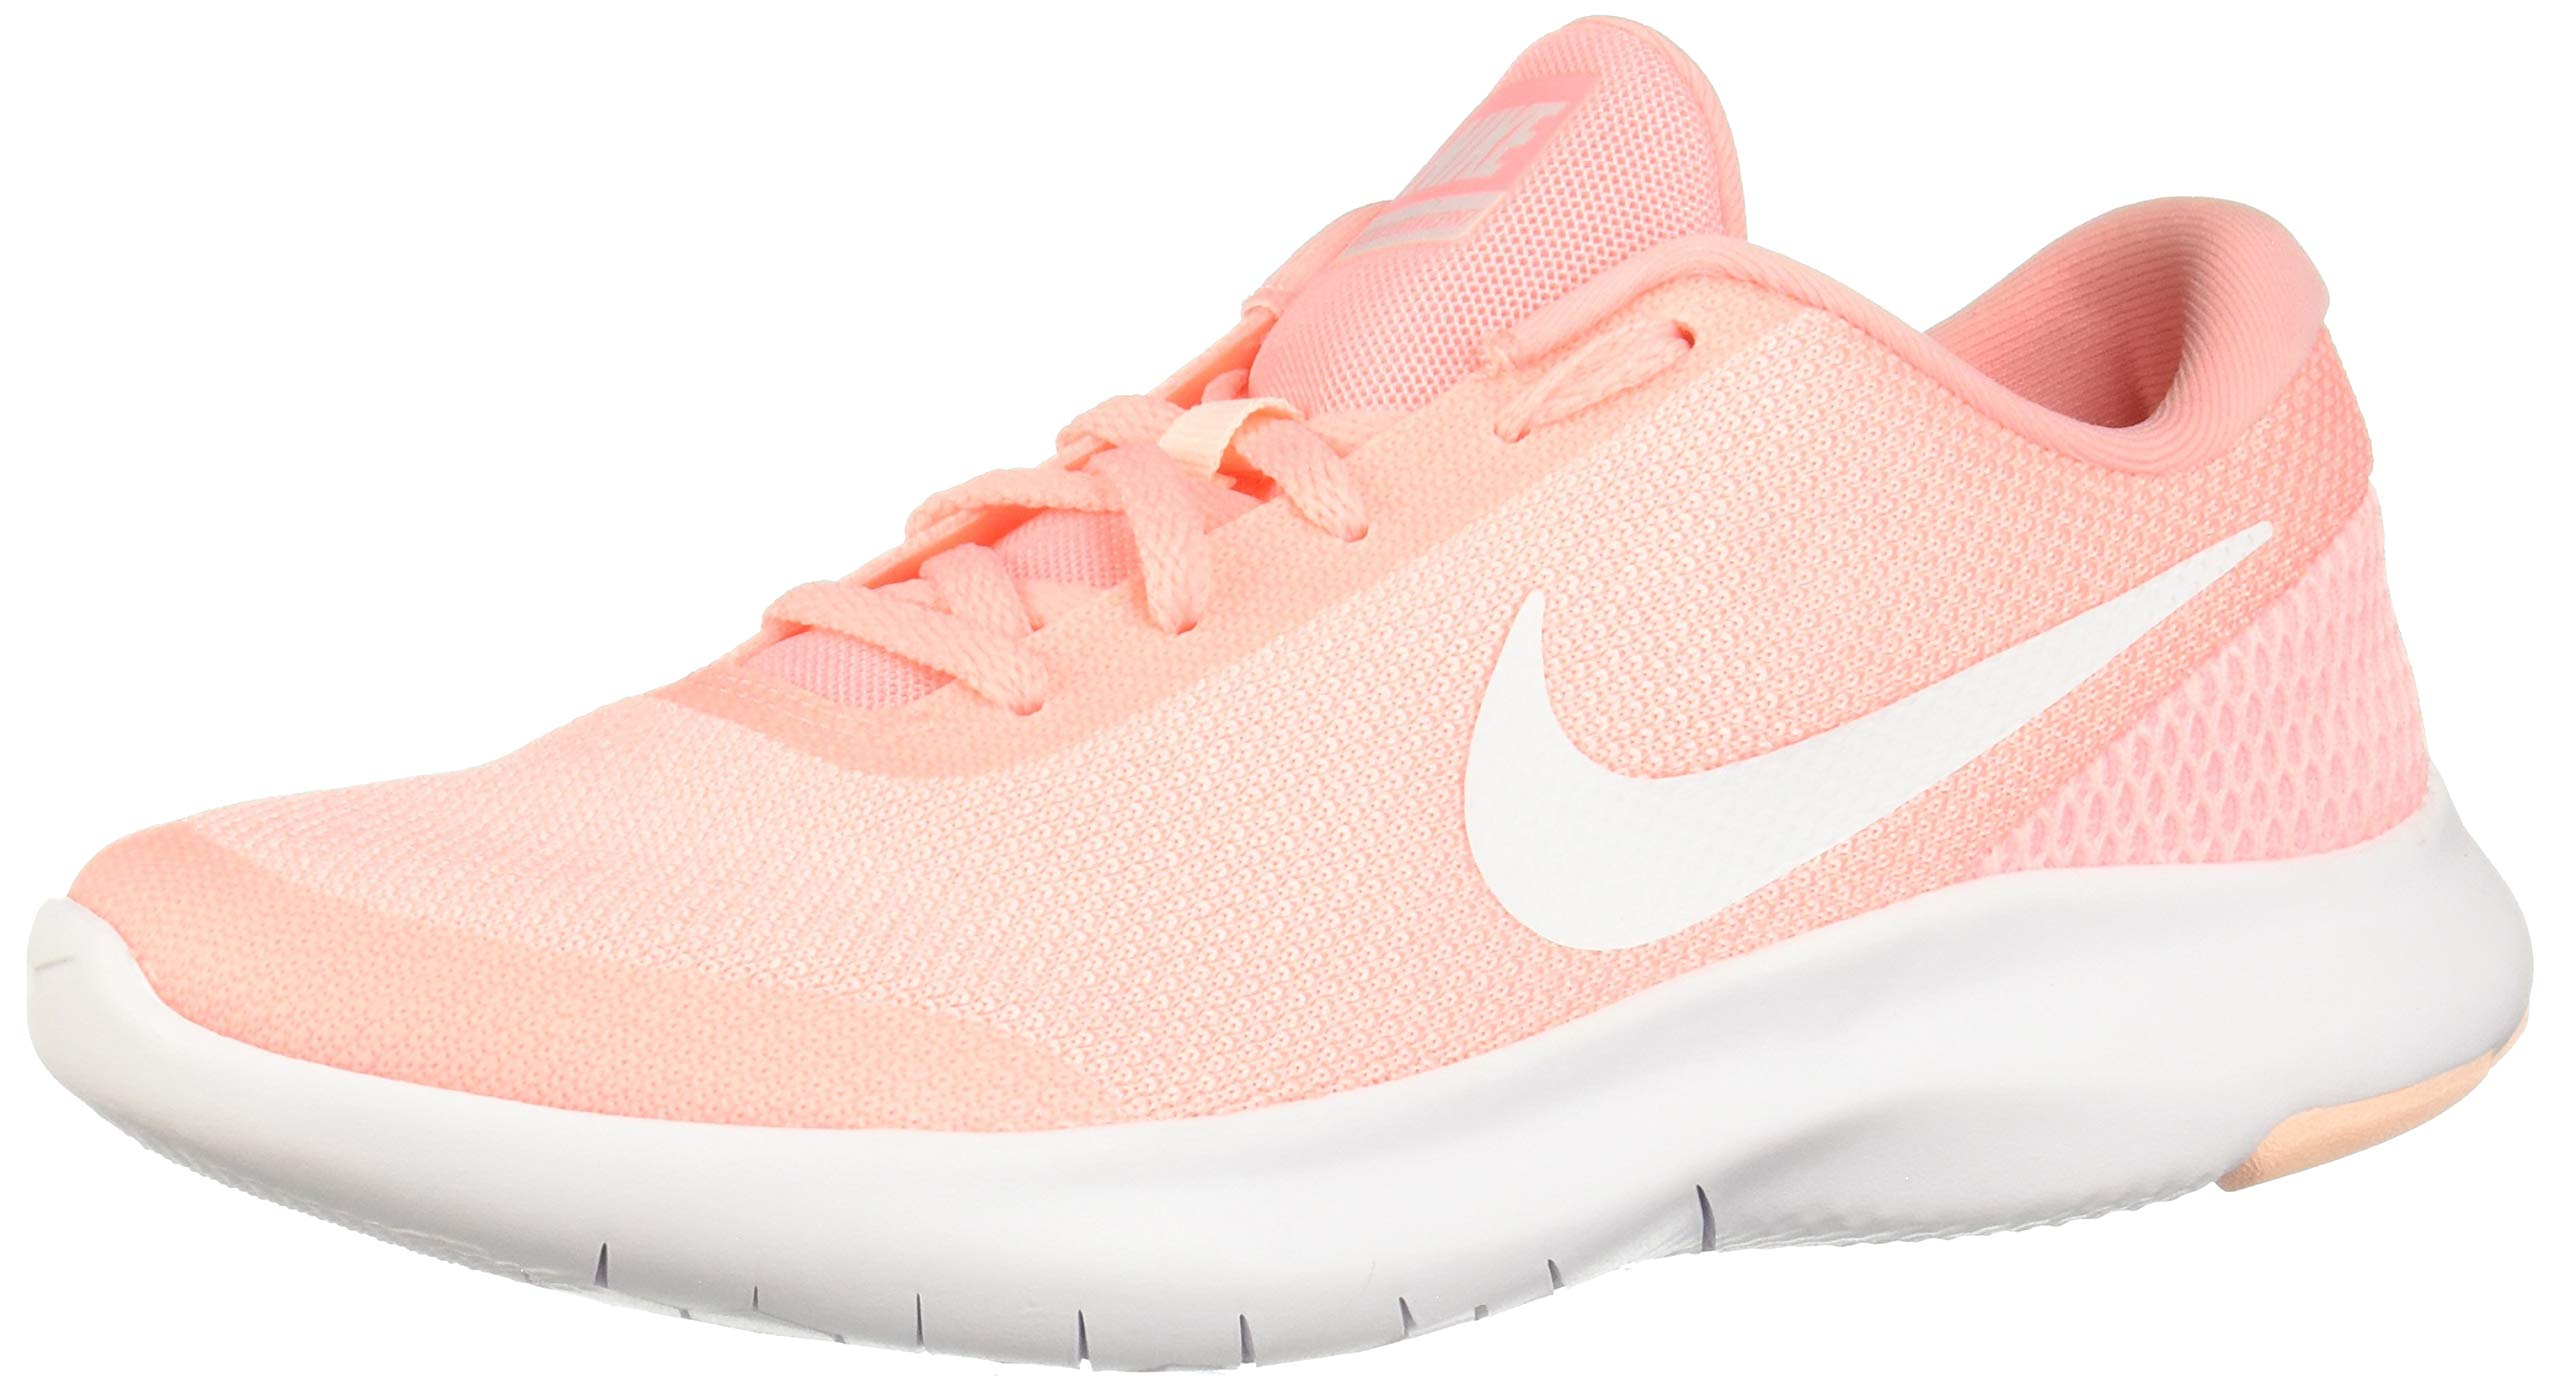 new arrivals c49f2 84618 Galleon - NIKE Women s Flex Experience Run 7 Shoe Pink Tint White-Crimson  Tint (8 B(M) US)